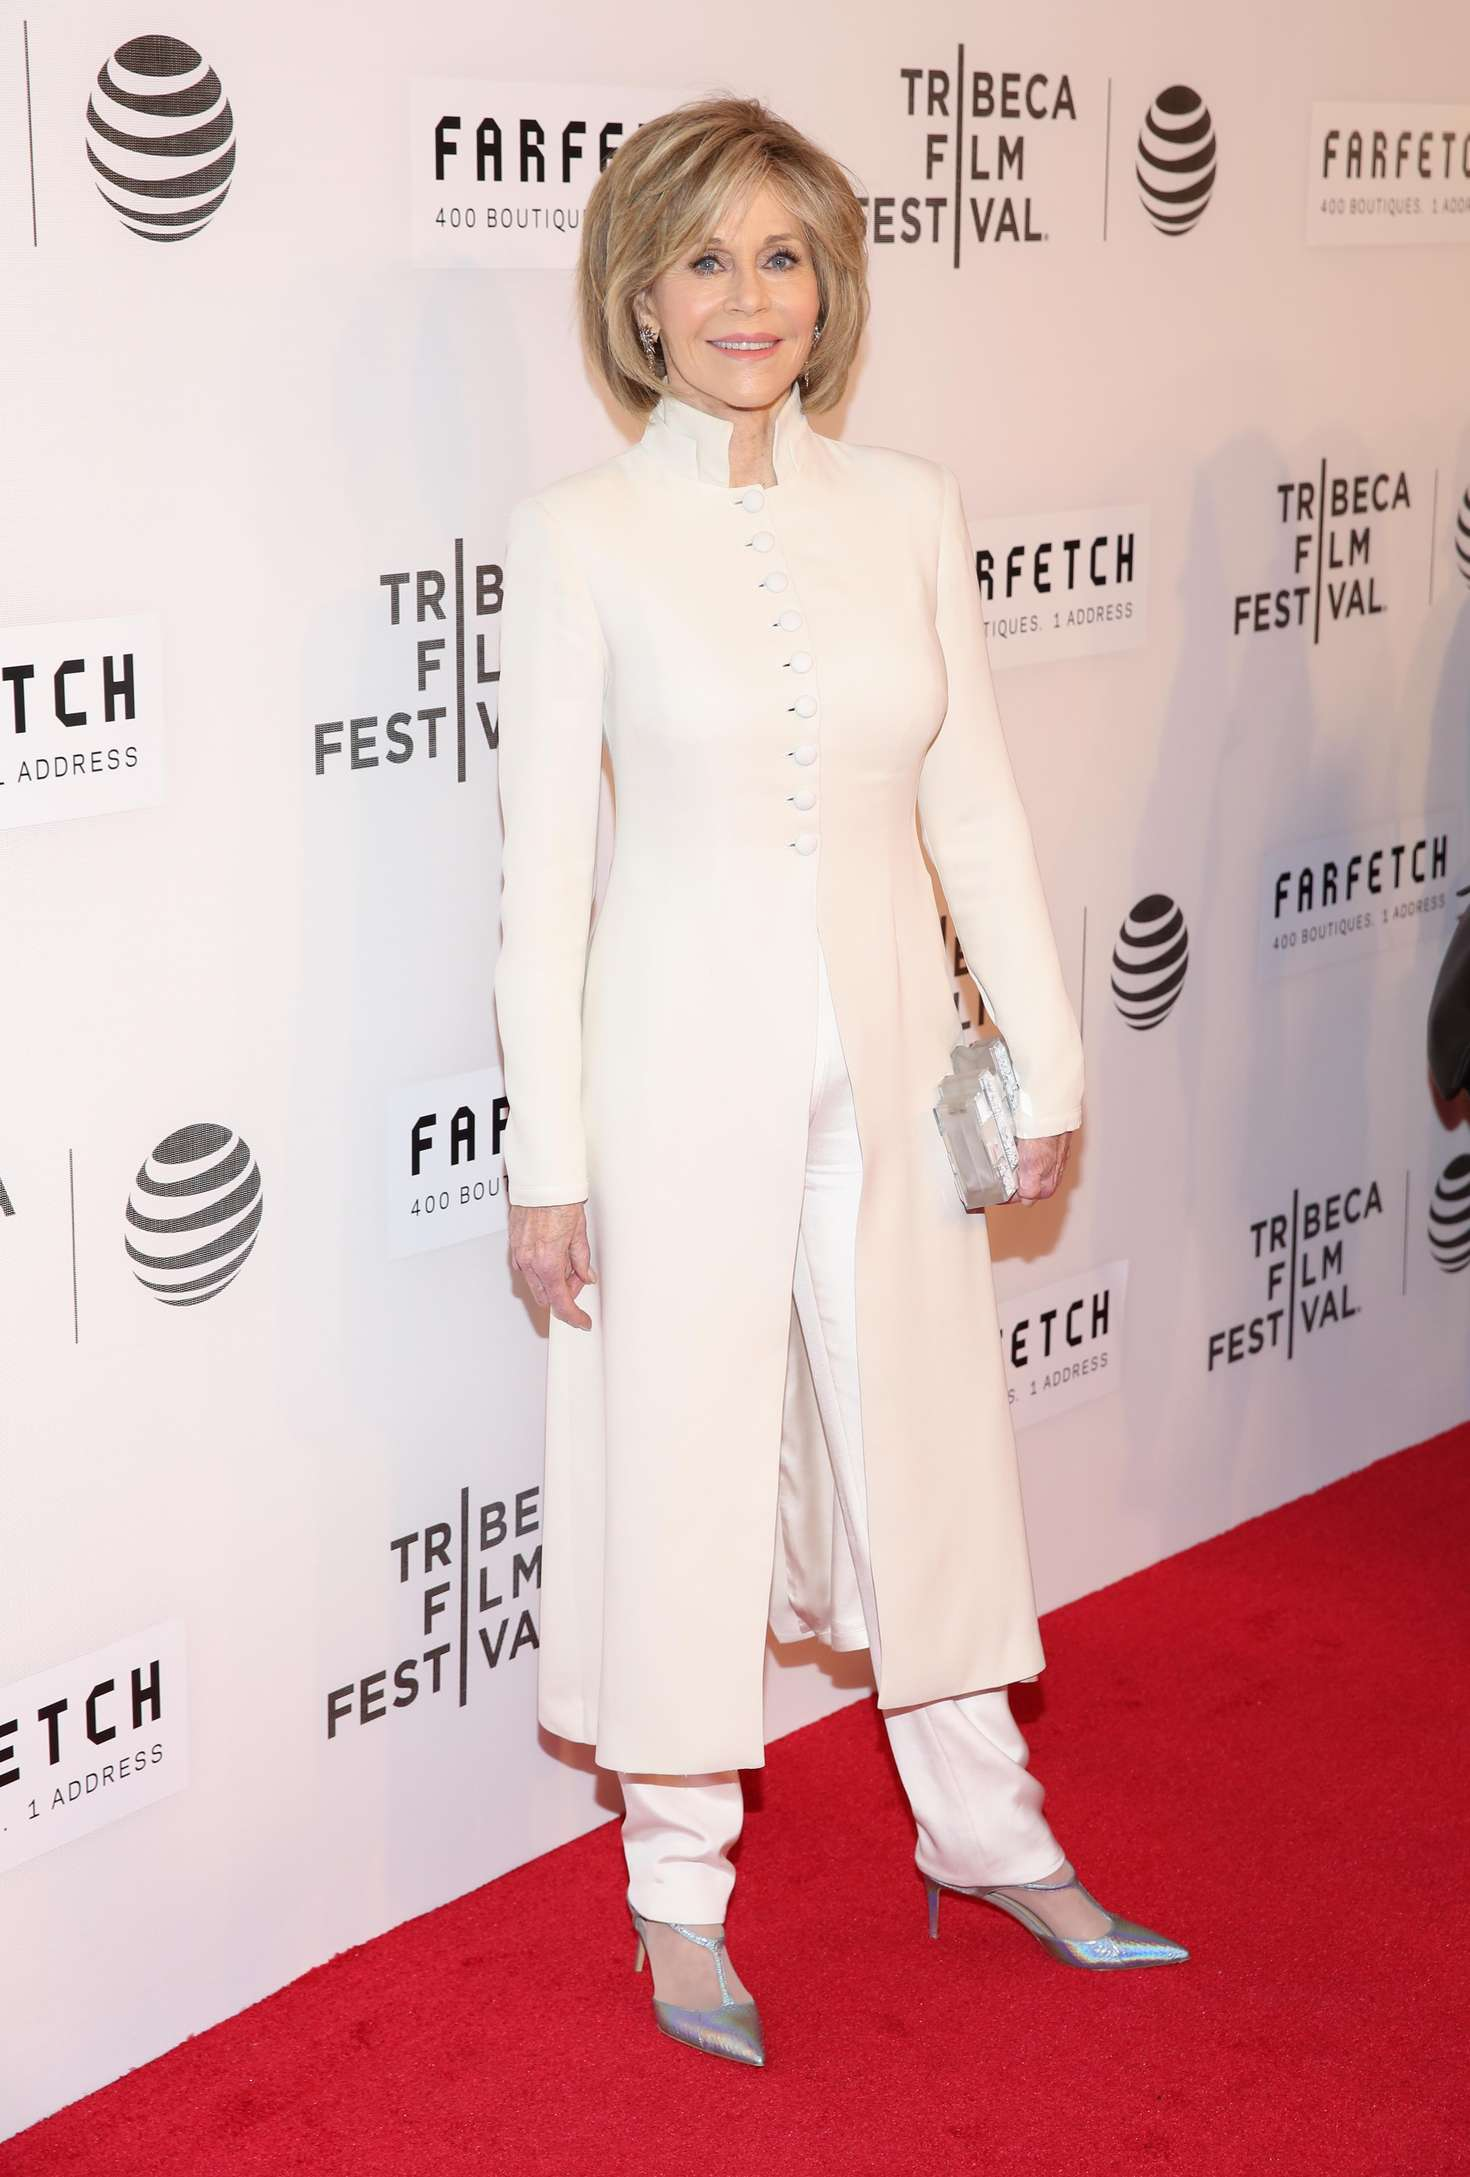 Jane Fonda The First Monday in May Premiere at the Tribeca Film Festival in New York